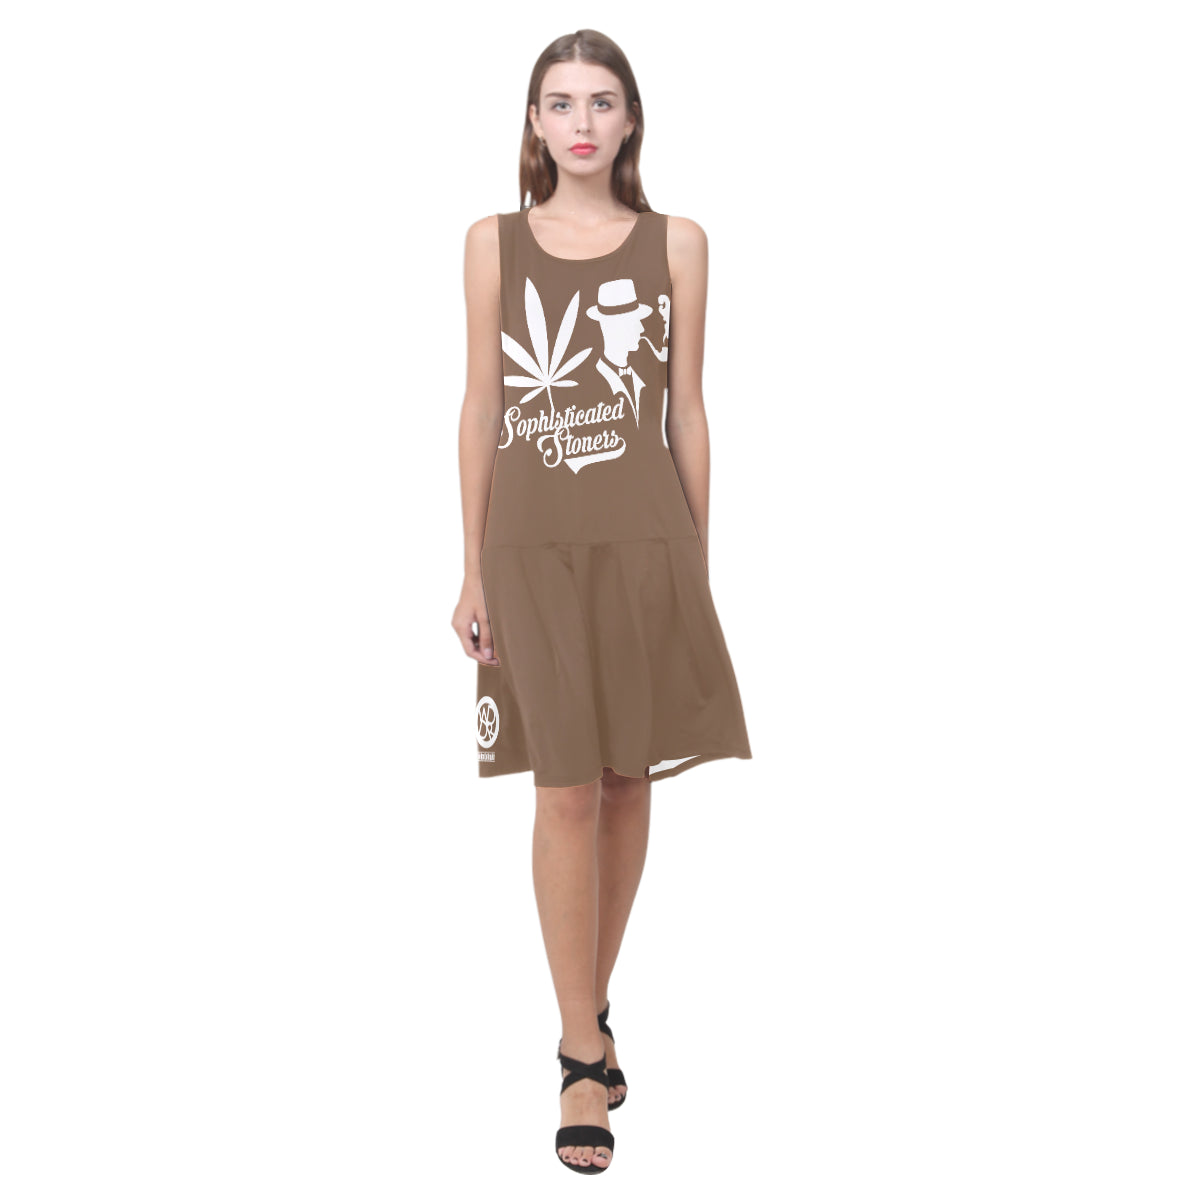 Chocolate Stoner Dress Sleeveless